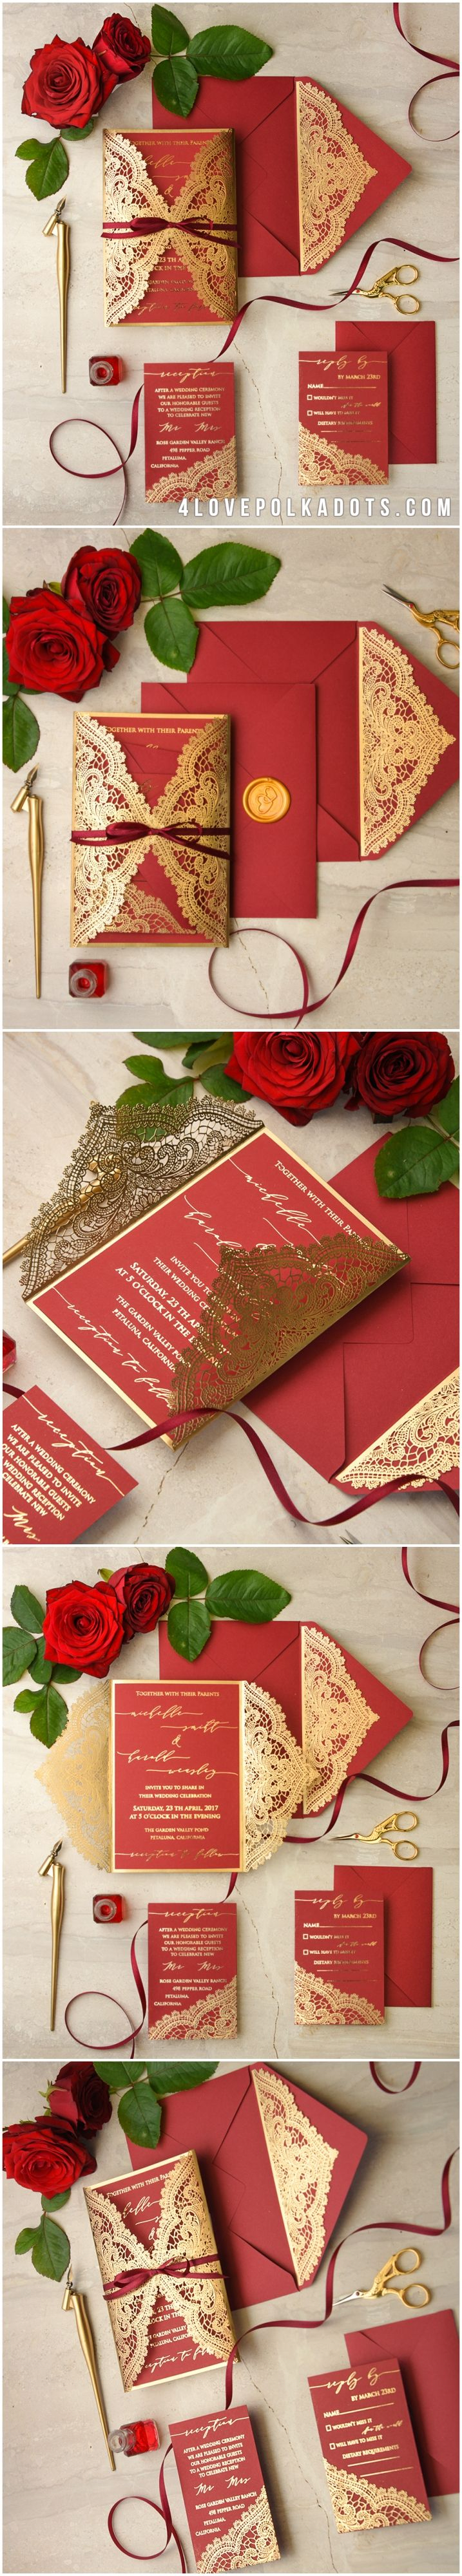 Invitation that uses the color red 701